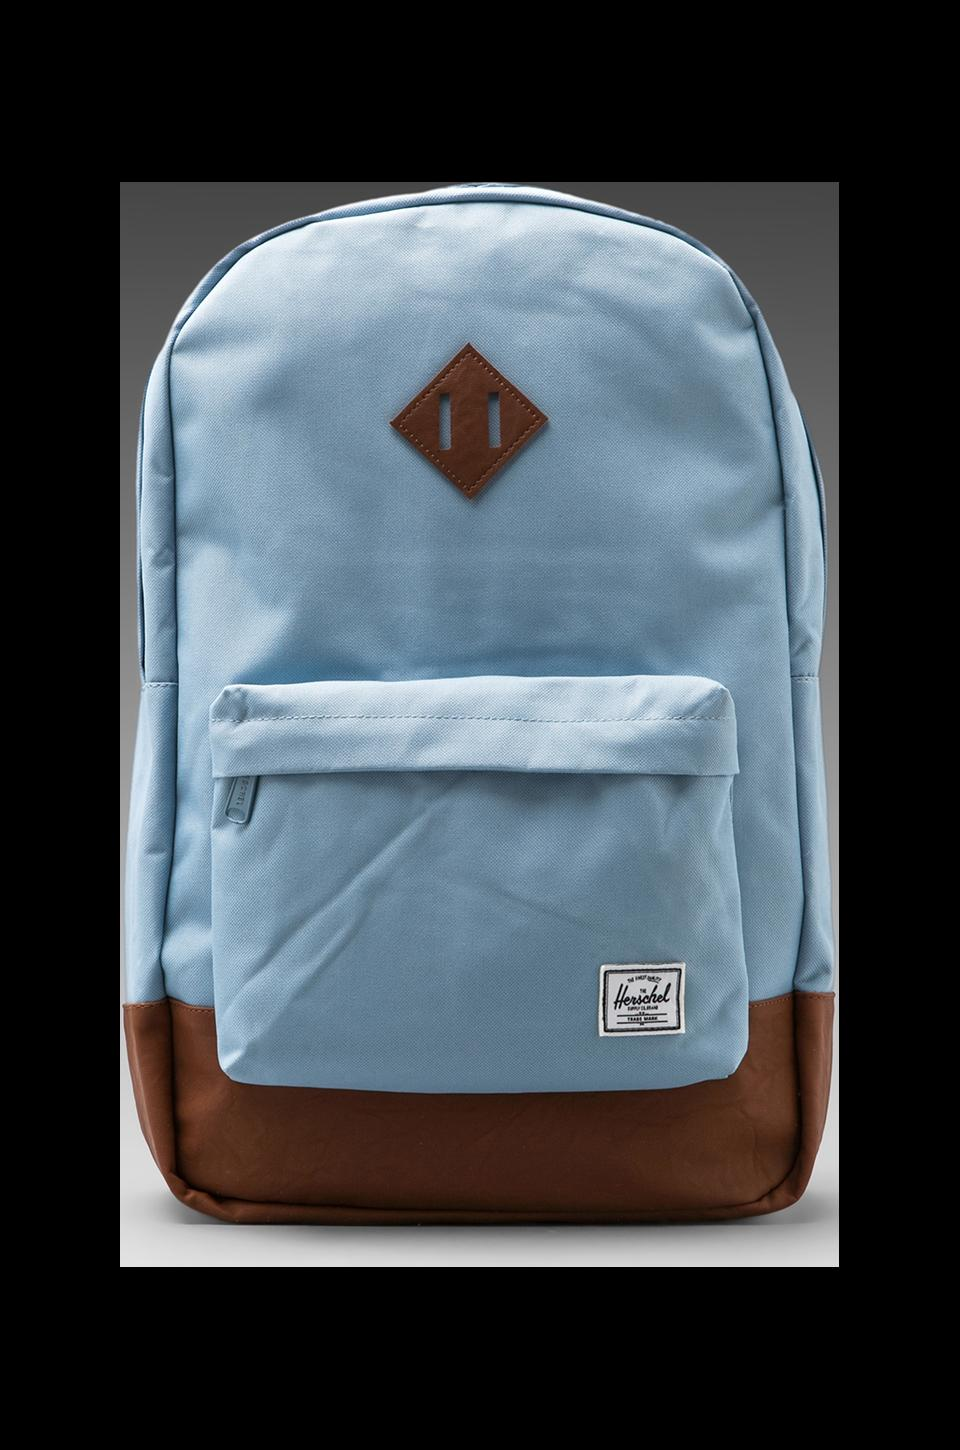 Herschel Supply Co. Sac à dos Heritage en Bleu Ciel